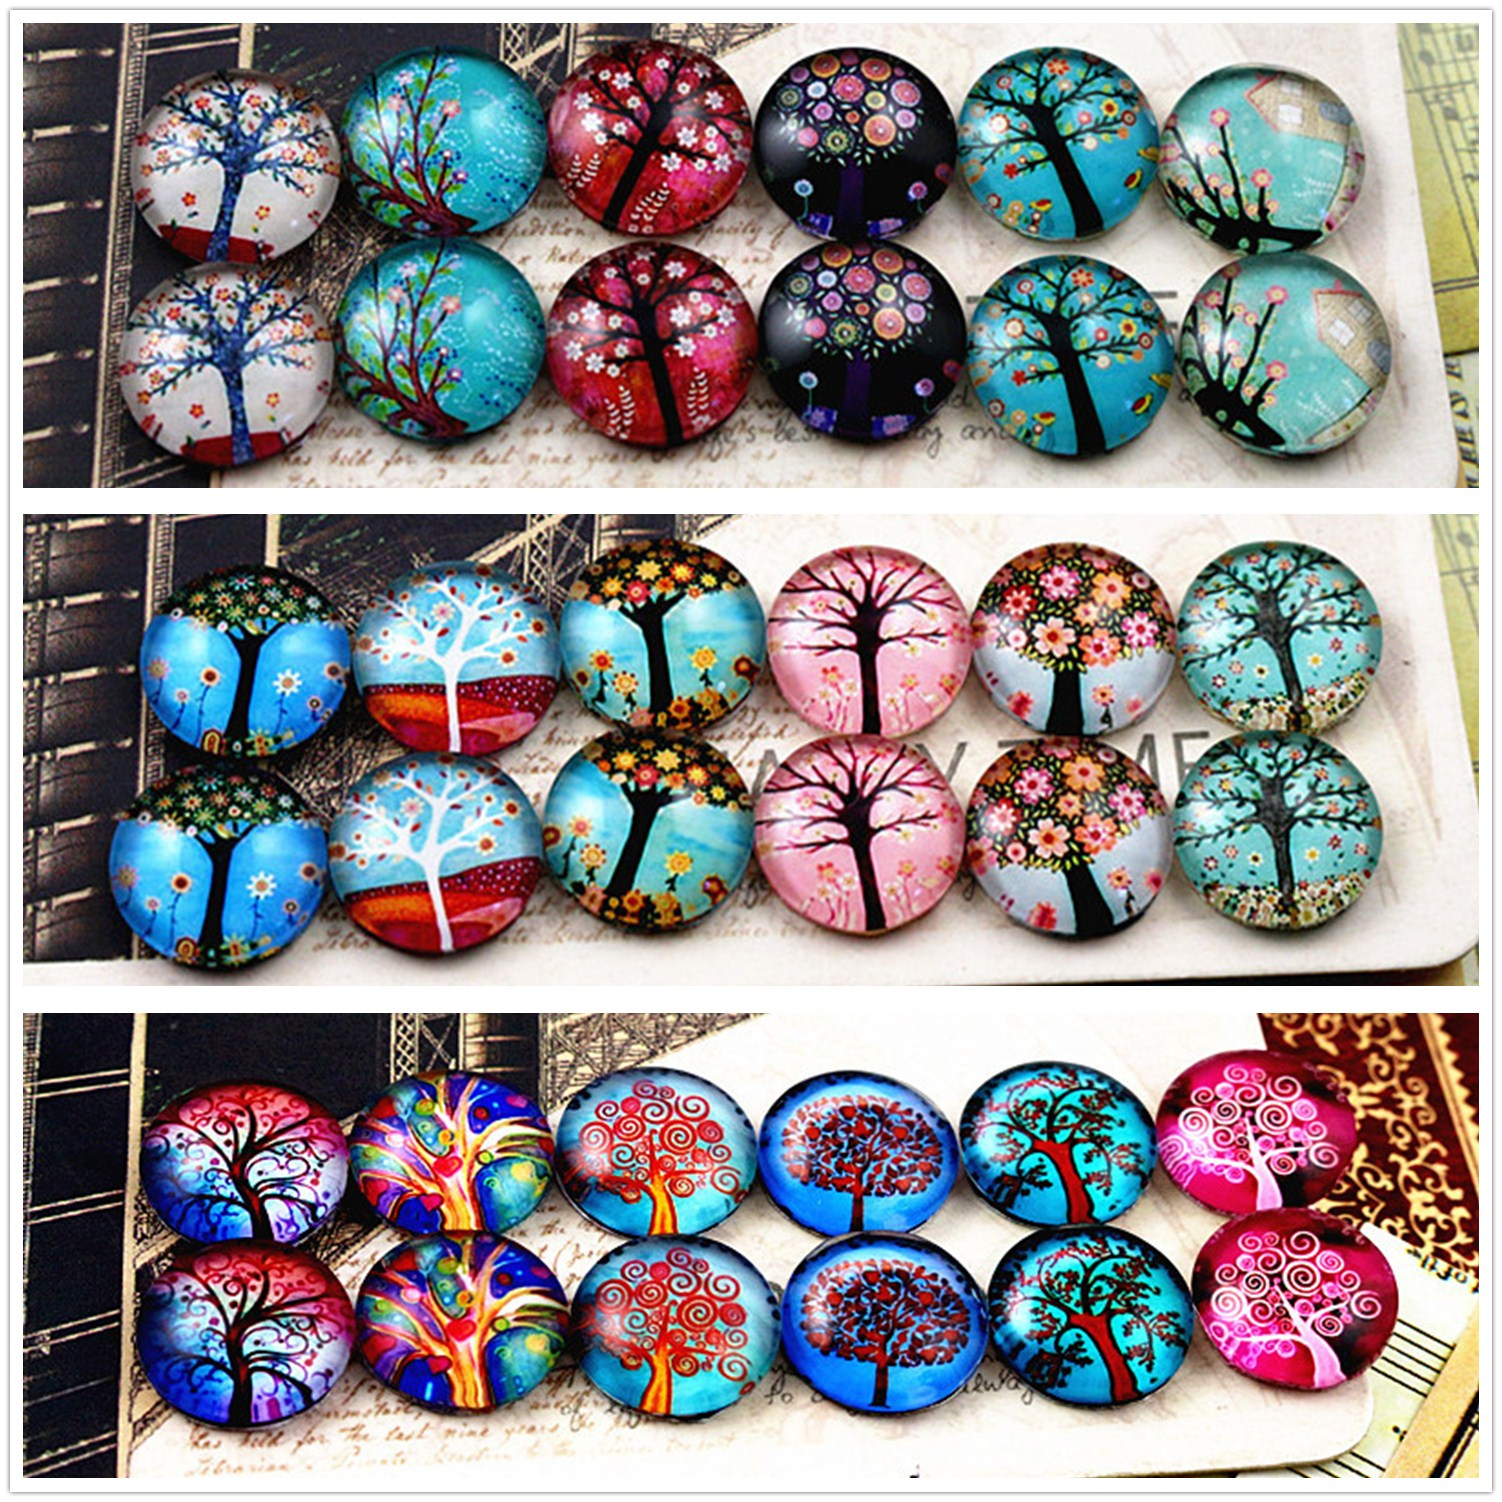 12pcs/lot (One Set) Three Style Fit 12mm Fashion Tree Handmade Glass Cabochons Pattern Domed Jewelry Accessories Supplies